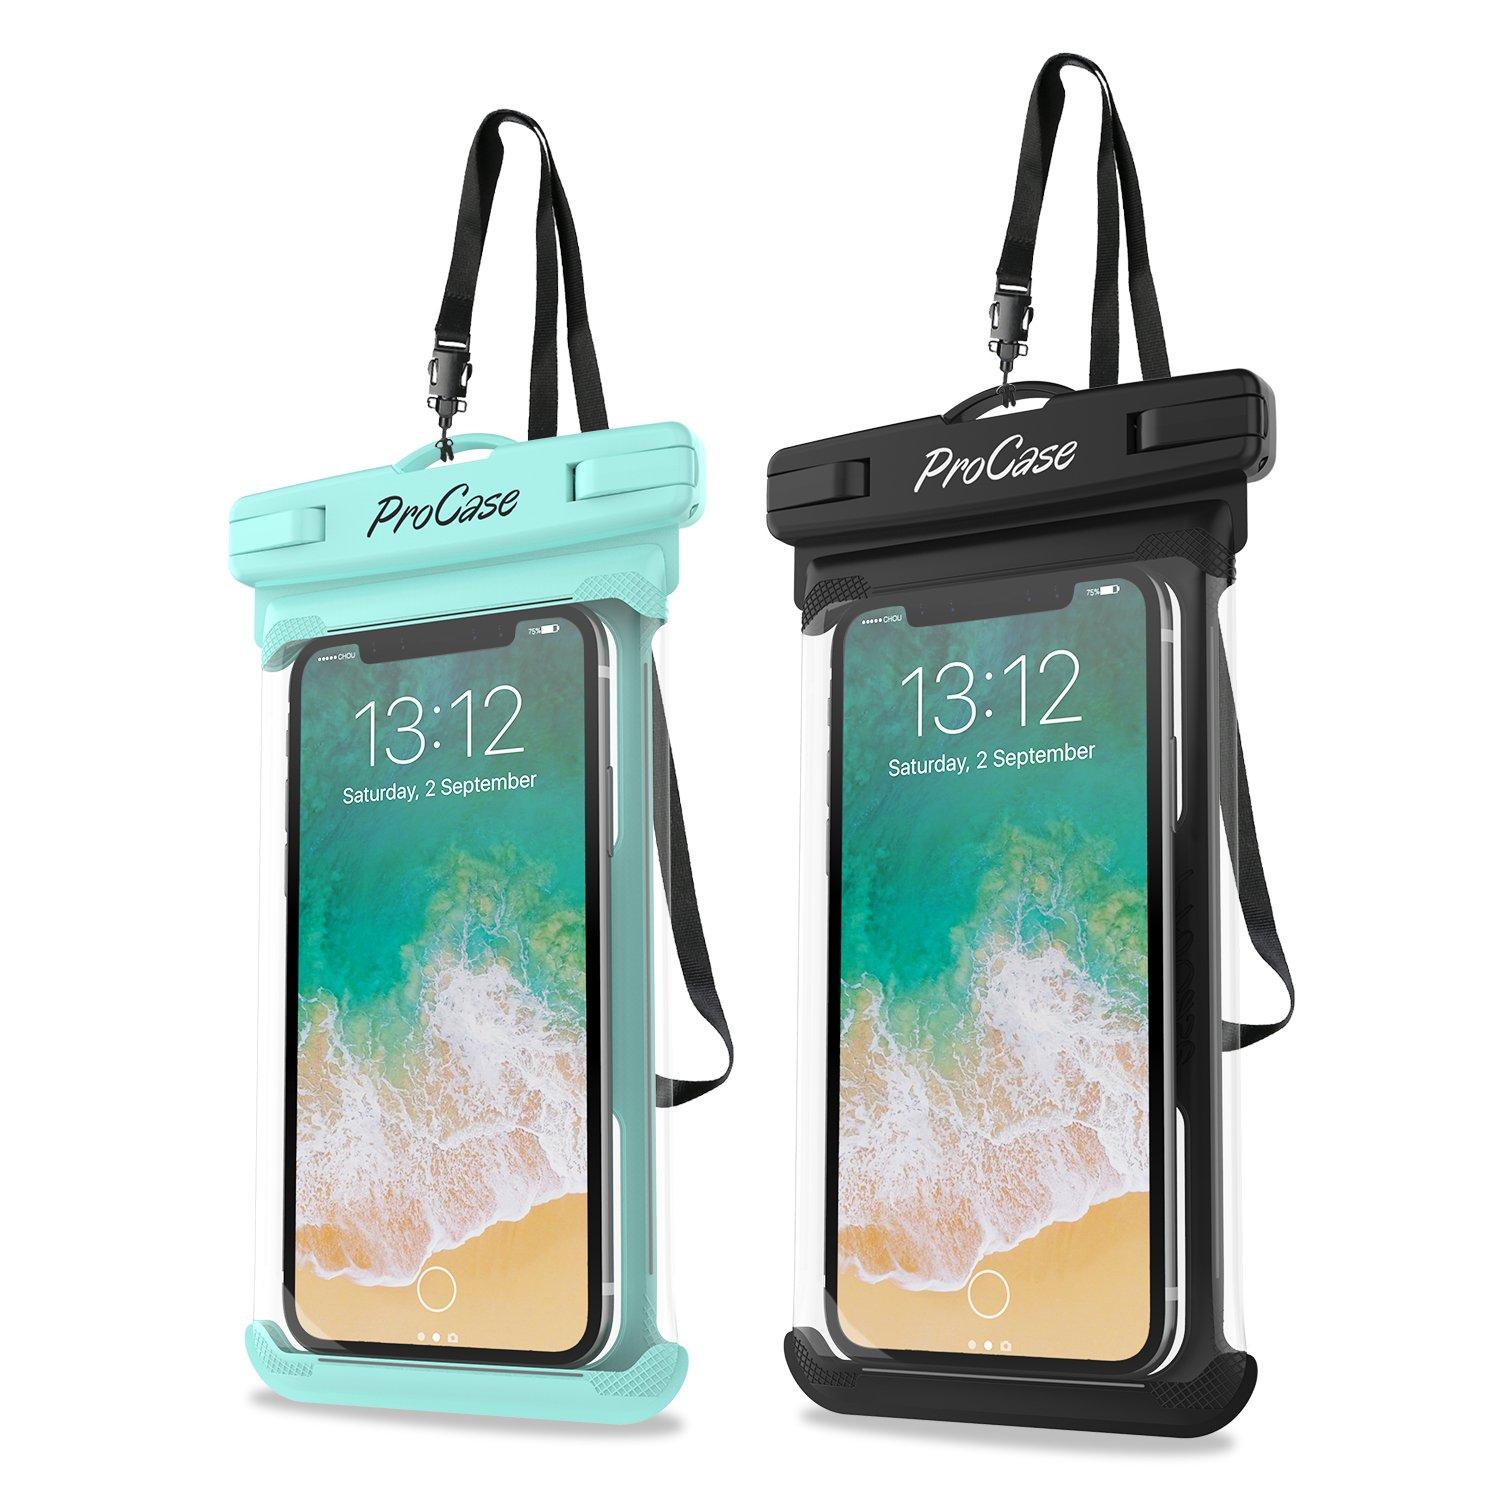 ProCase Universal Waterproof Case Cellphone Dry Bag Pouch for iPhone Xs Max XR XS X 8 7 6S Plus, Galaxy S10 Plus S10 S10e S9+/Note 10 10+ 5G 9 8, Pixel 3 XL up to 6.8'' - 2 Pack, Green/Black by ProCase